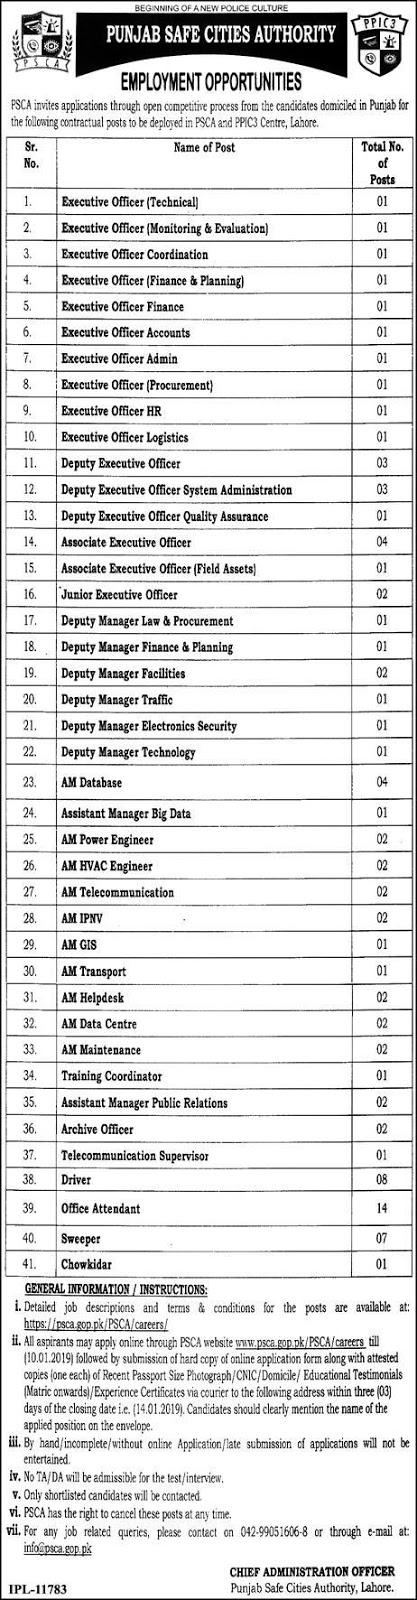 PSCA Jobs 26 December 2018 Punjab Safe Cities Authority